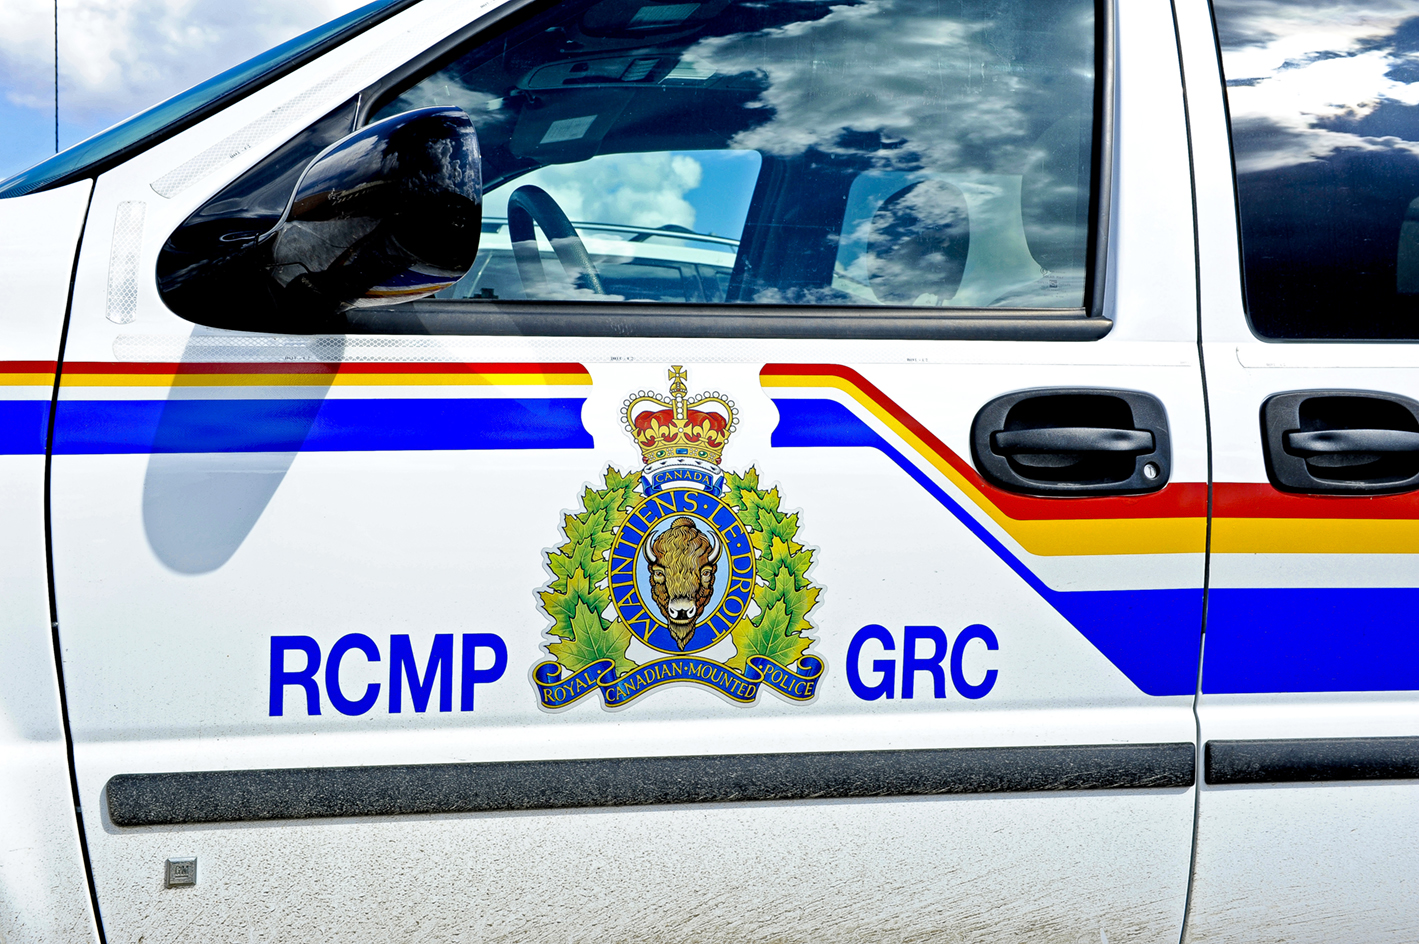 Tractor-trailer crash kills two 12 km south of McLeod Lake - My